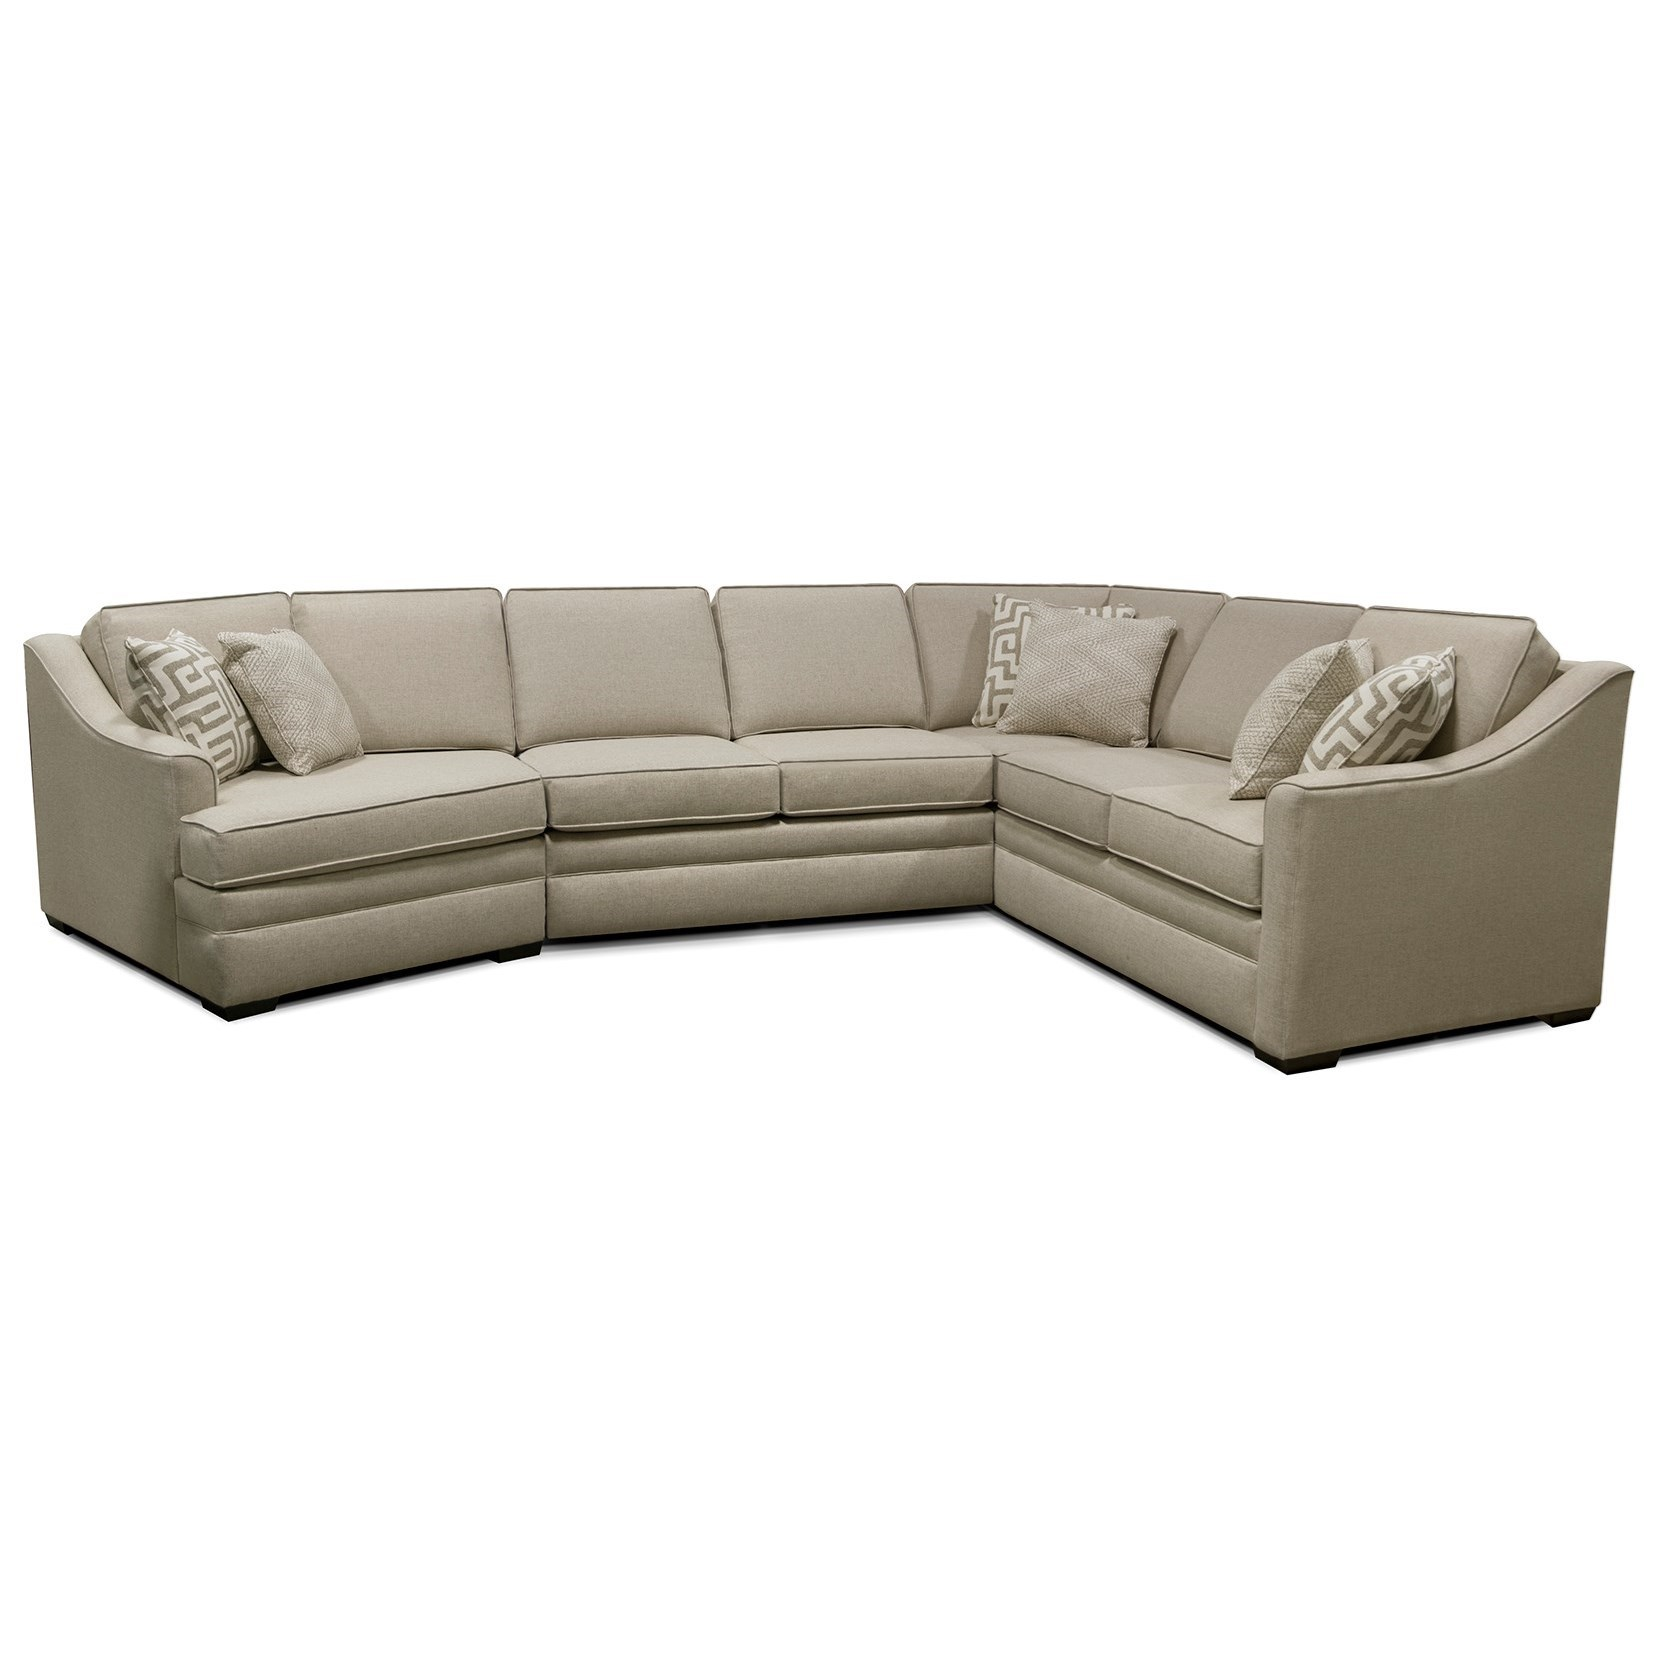 Thomas Sectional Sofa with Five Seats by England at Virginia Furniture Market